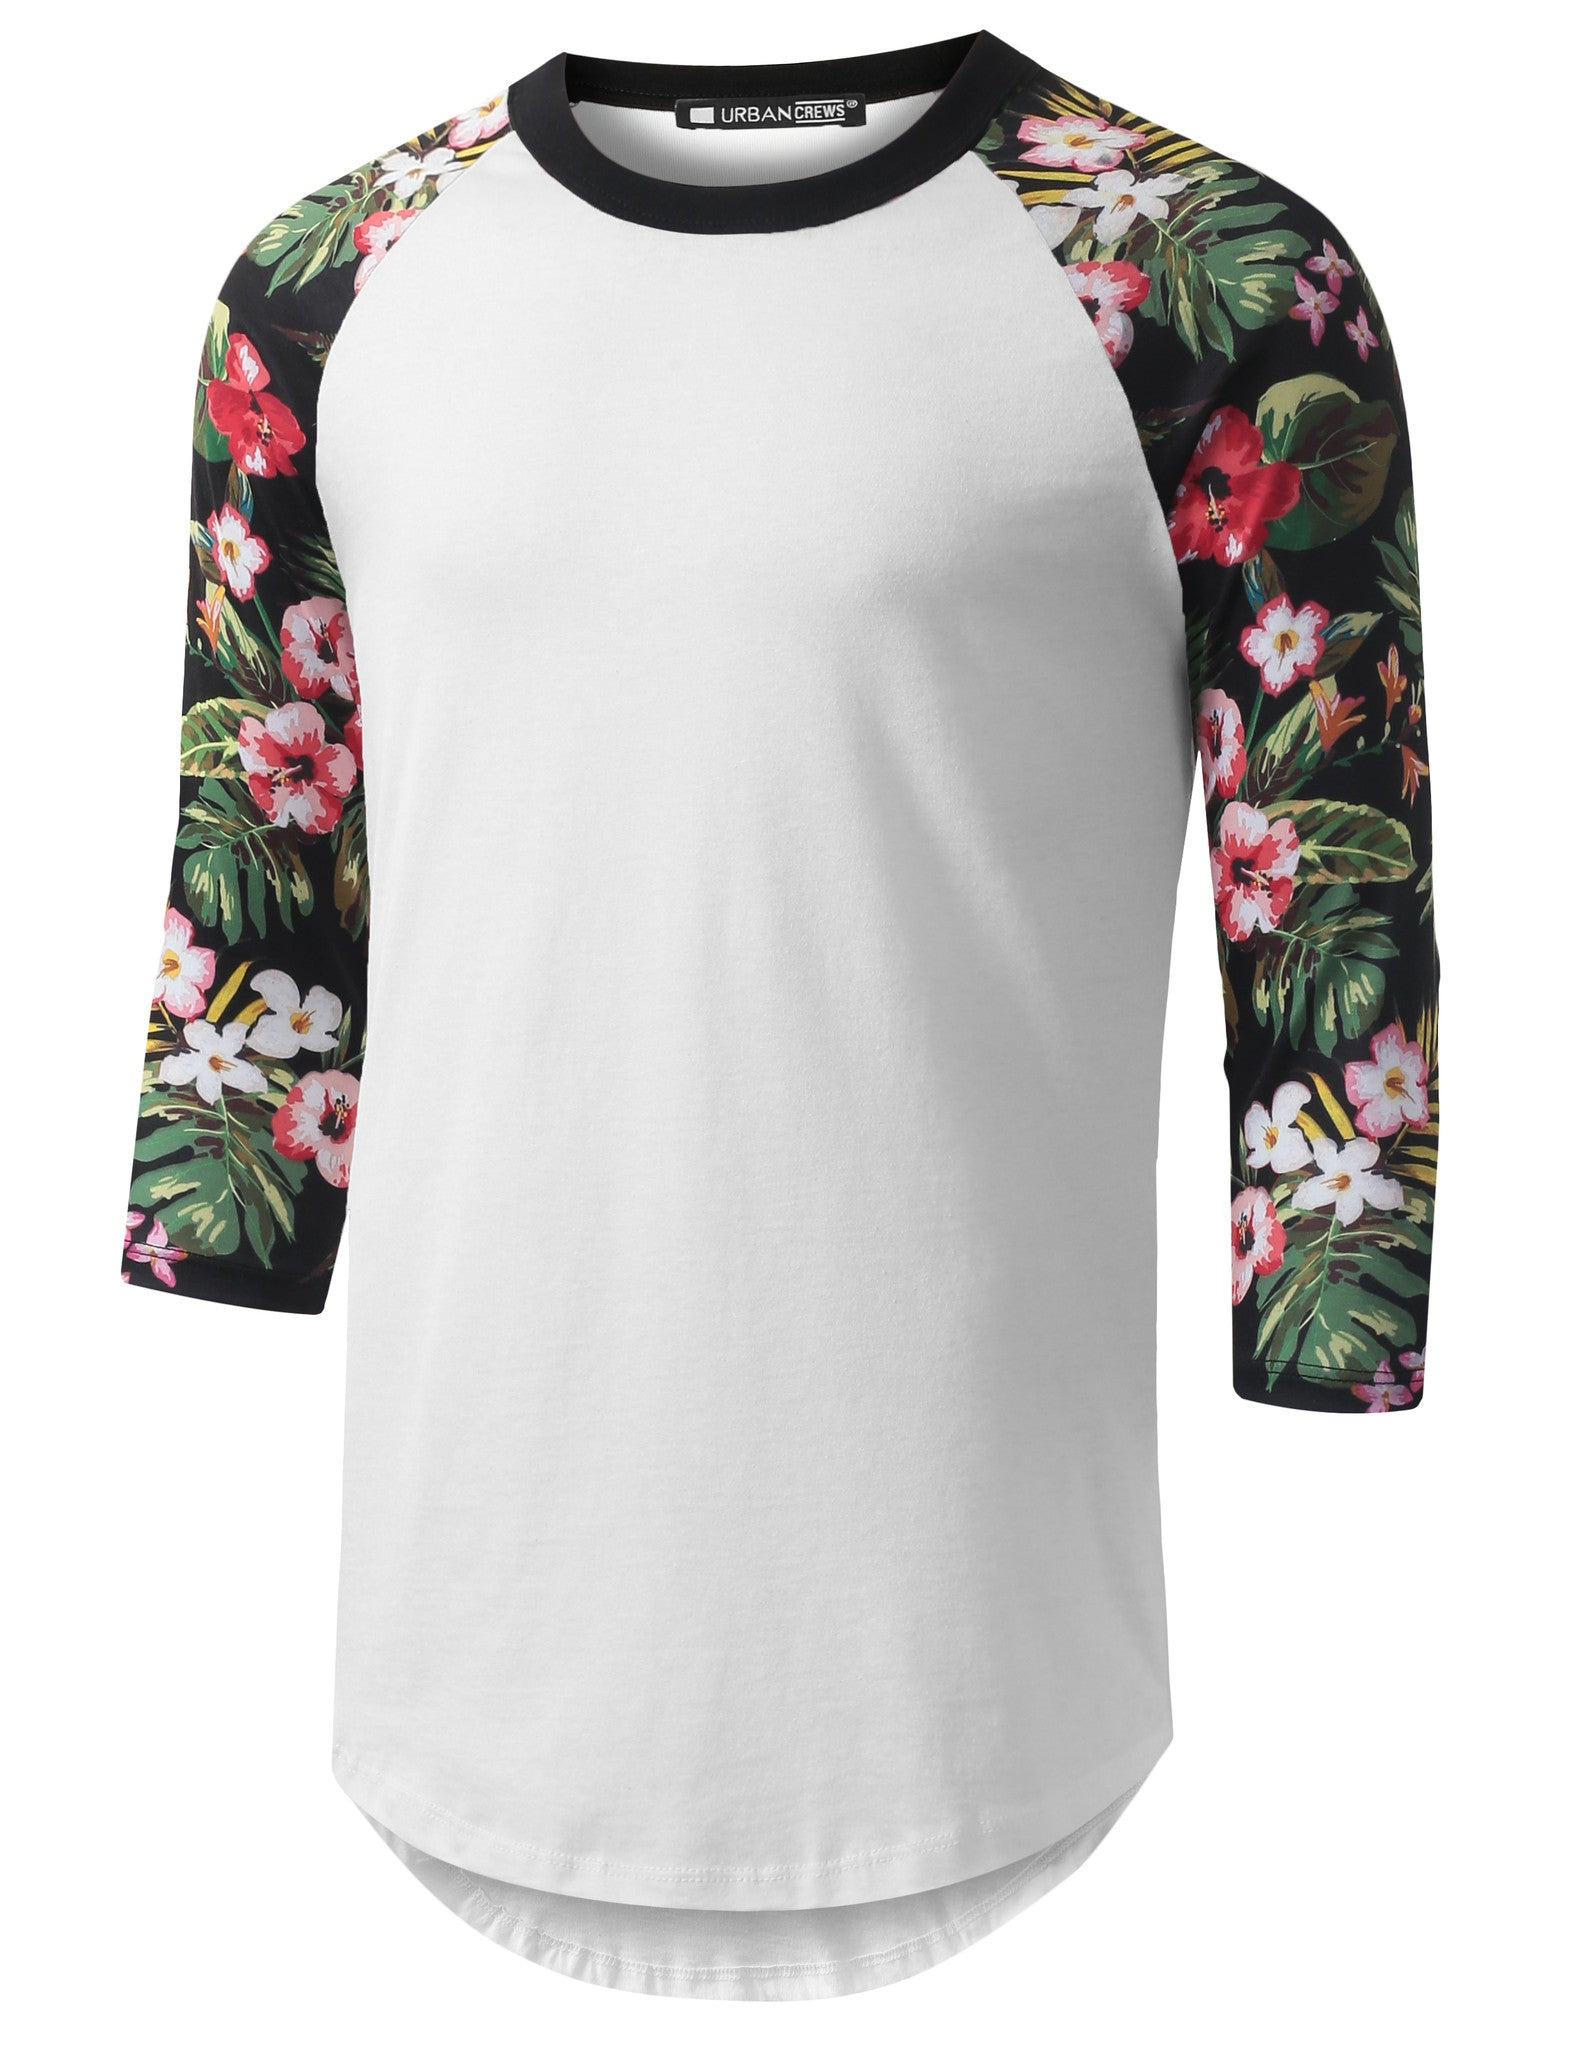 WHITE 3/4 Sleeve Tropical Floral Longline Raglan Baseball Shirt- URBANCREWS